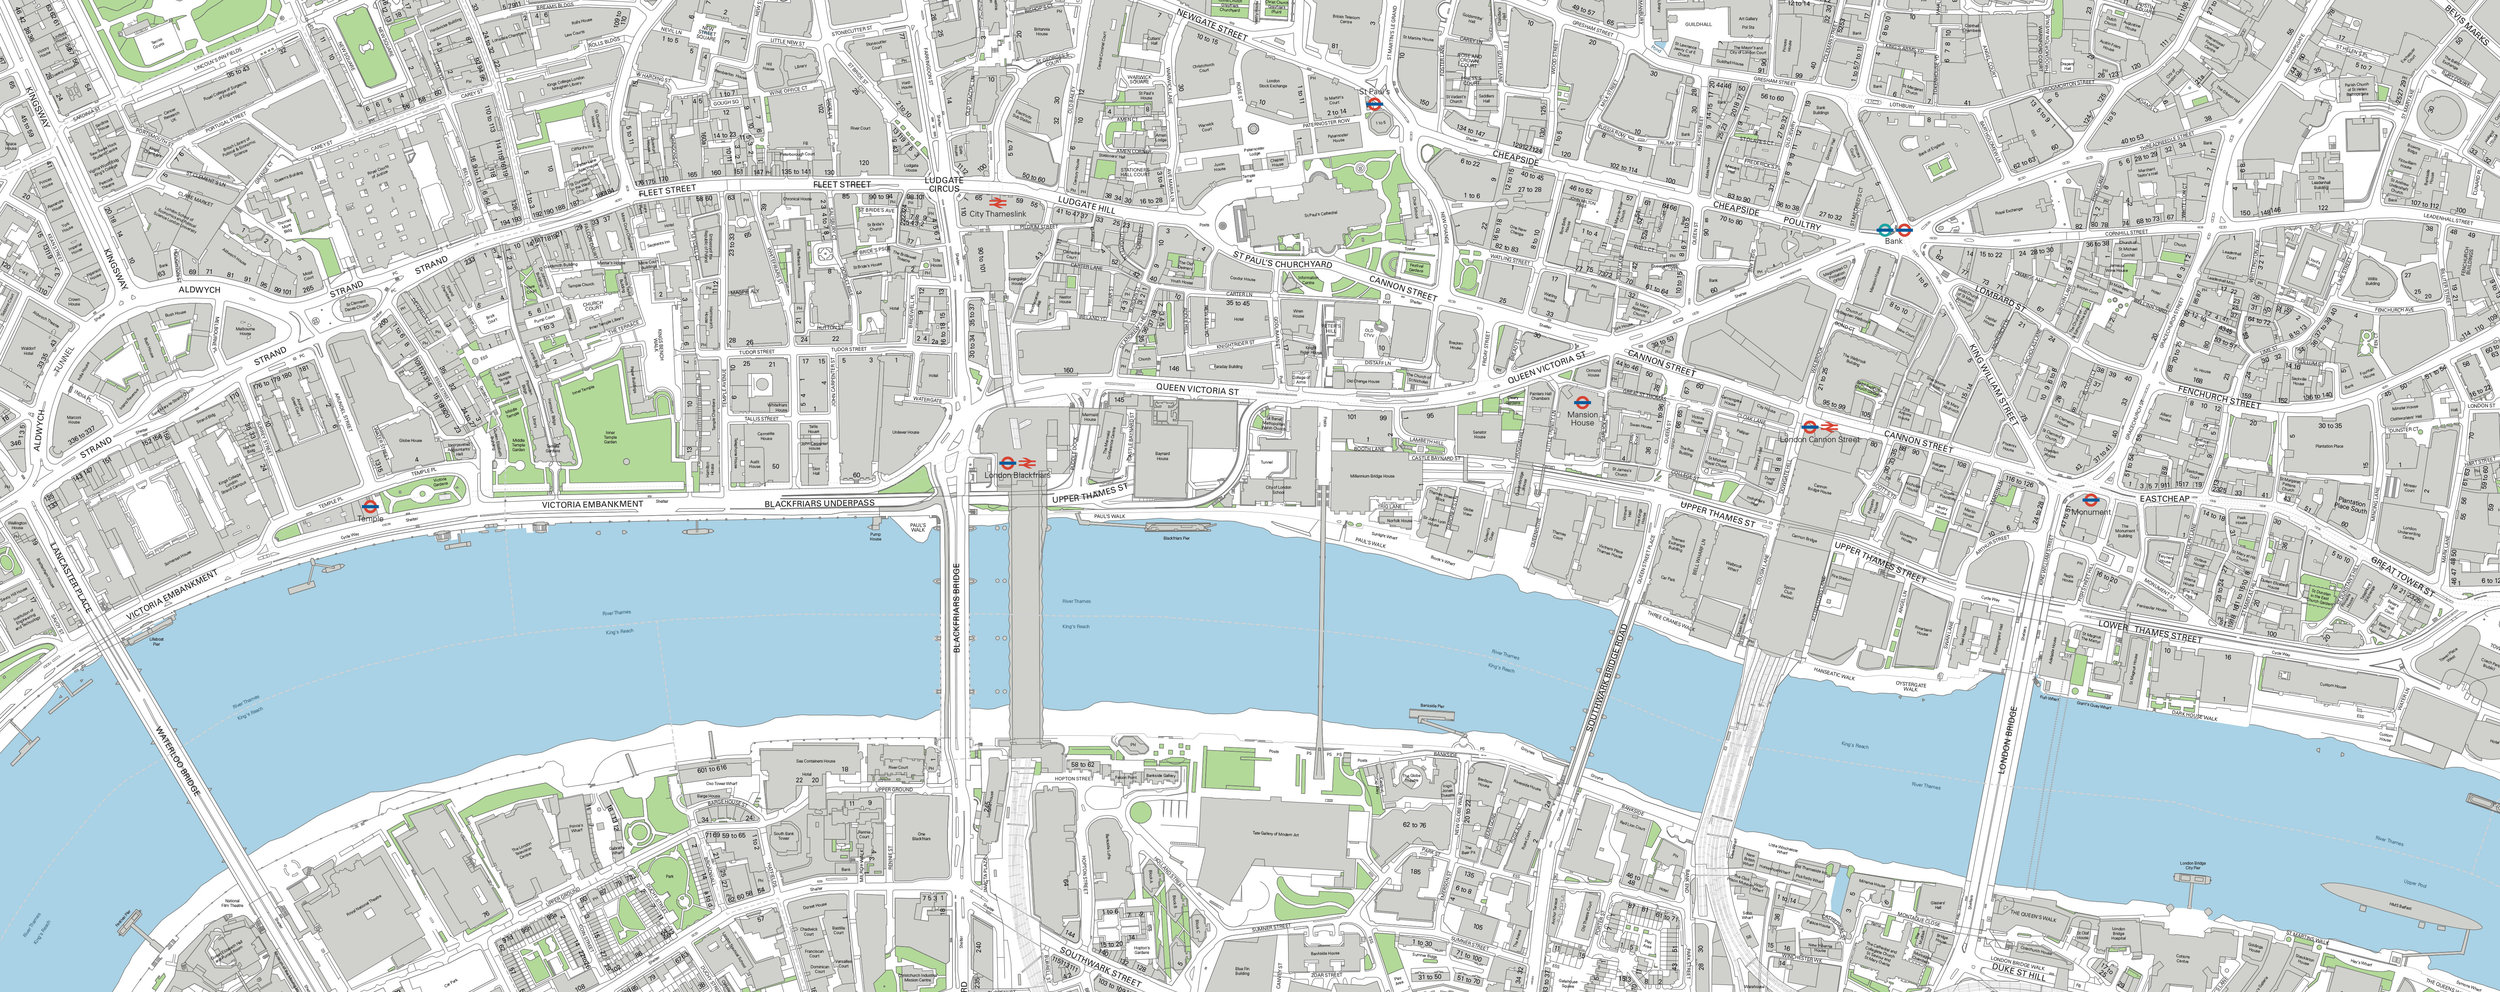 london building detail map.jpg